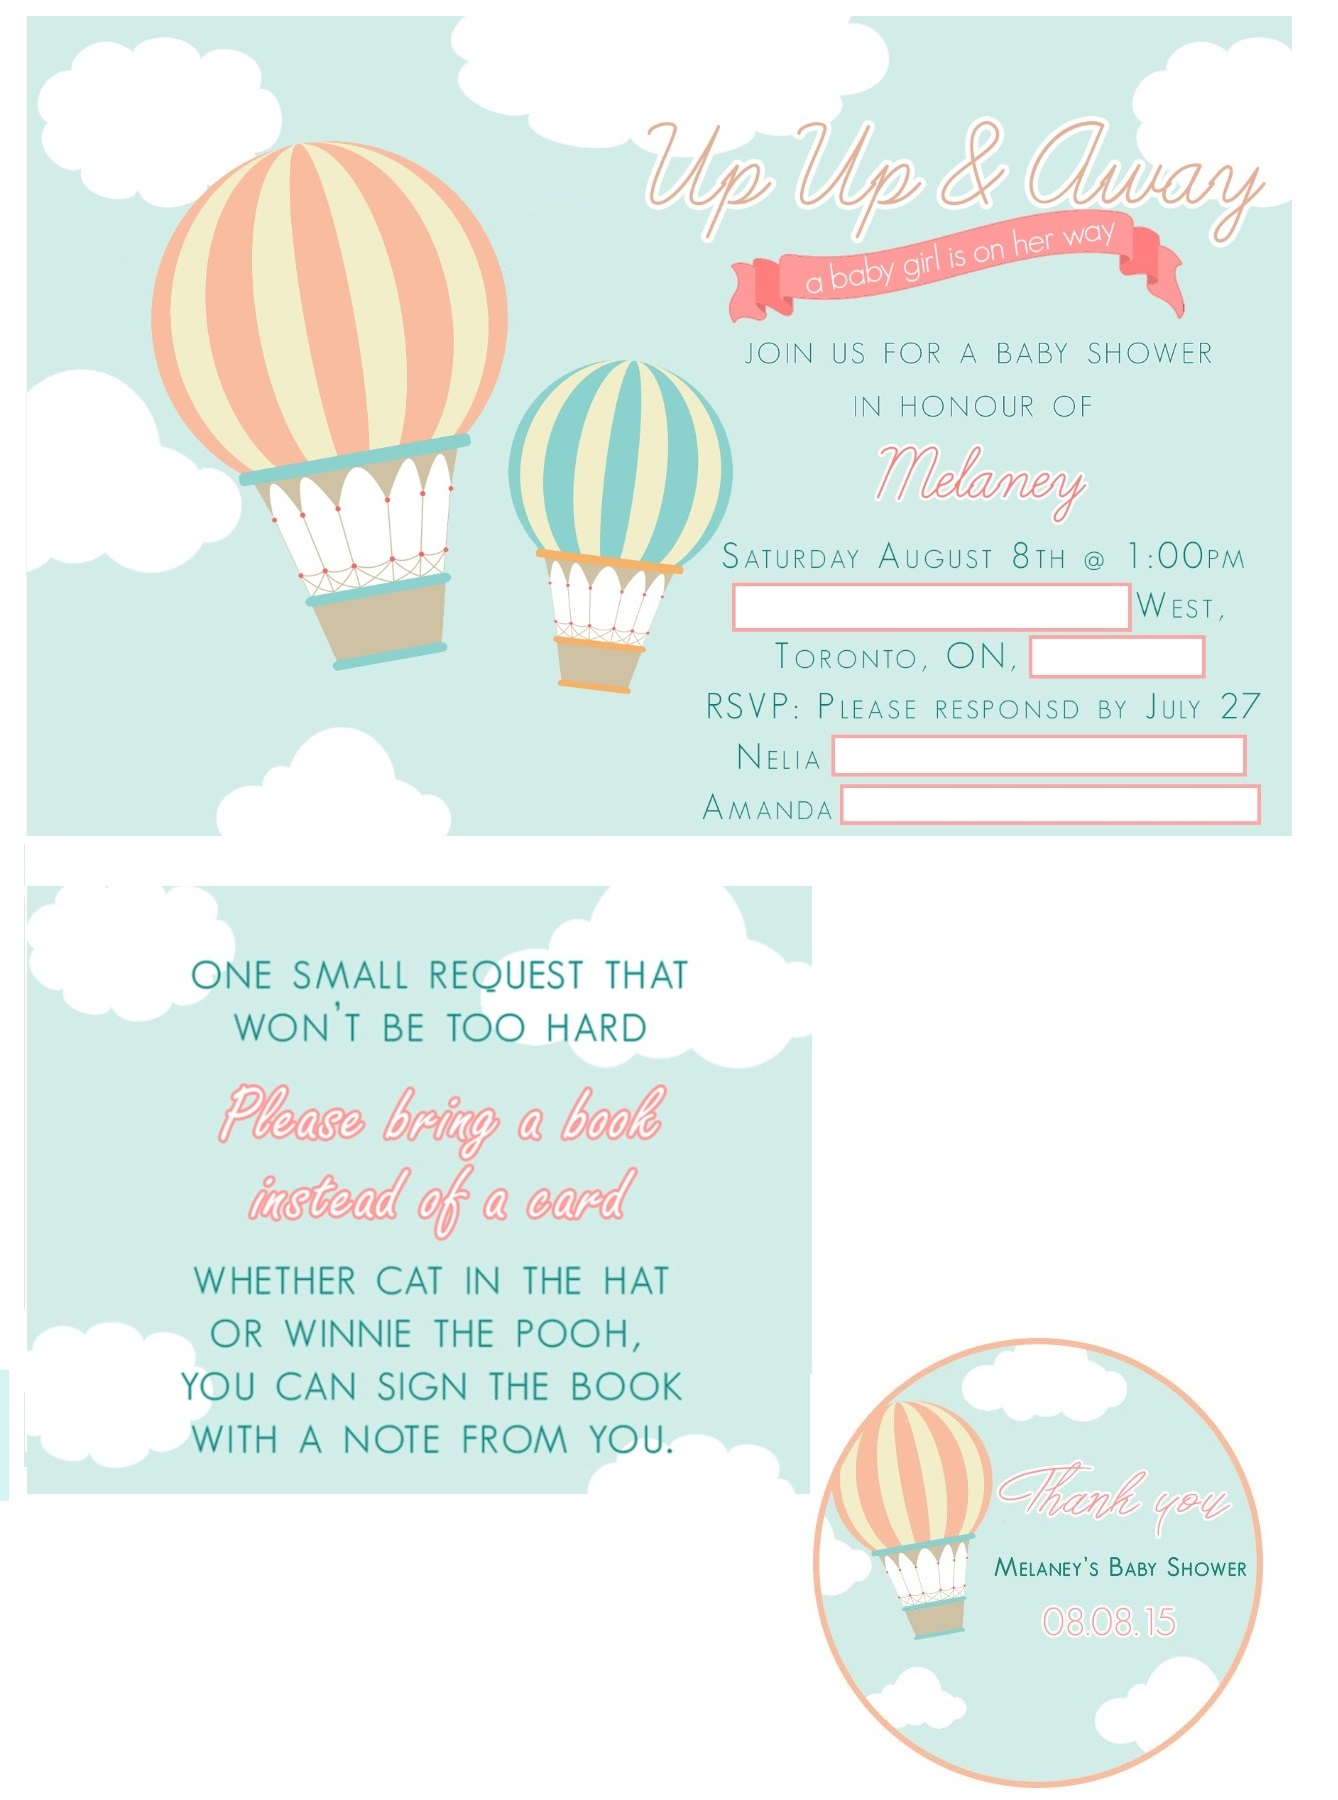 Up Up and Away Baby Shower